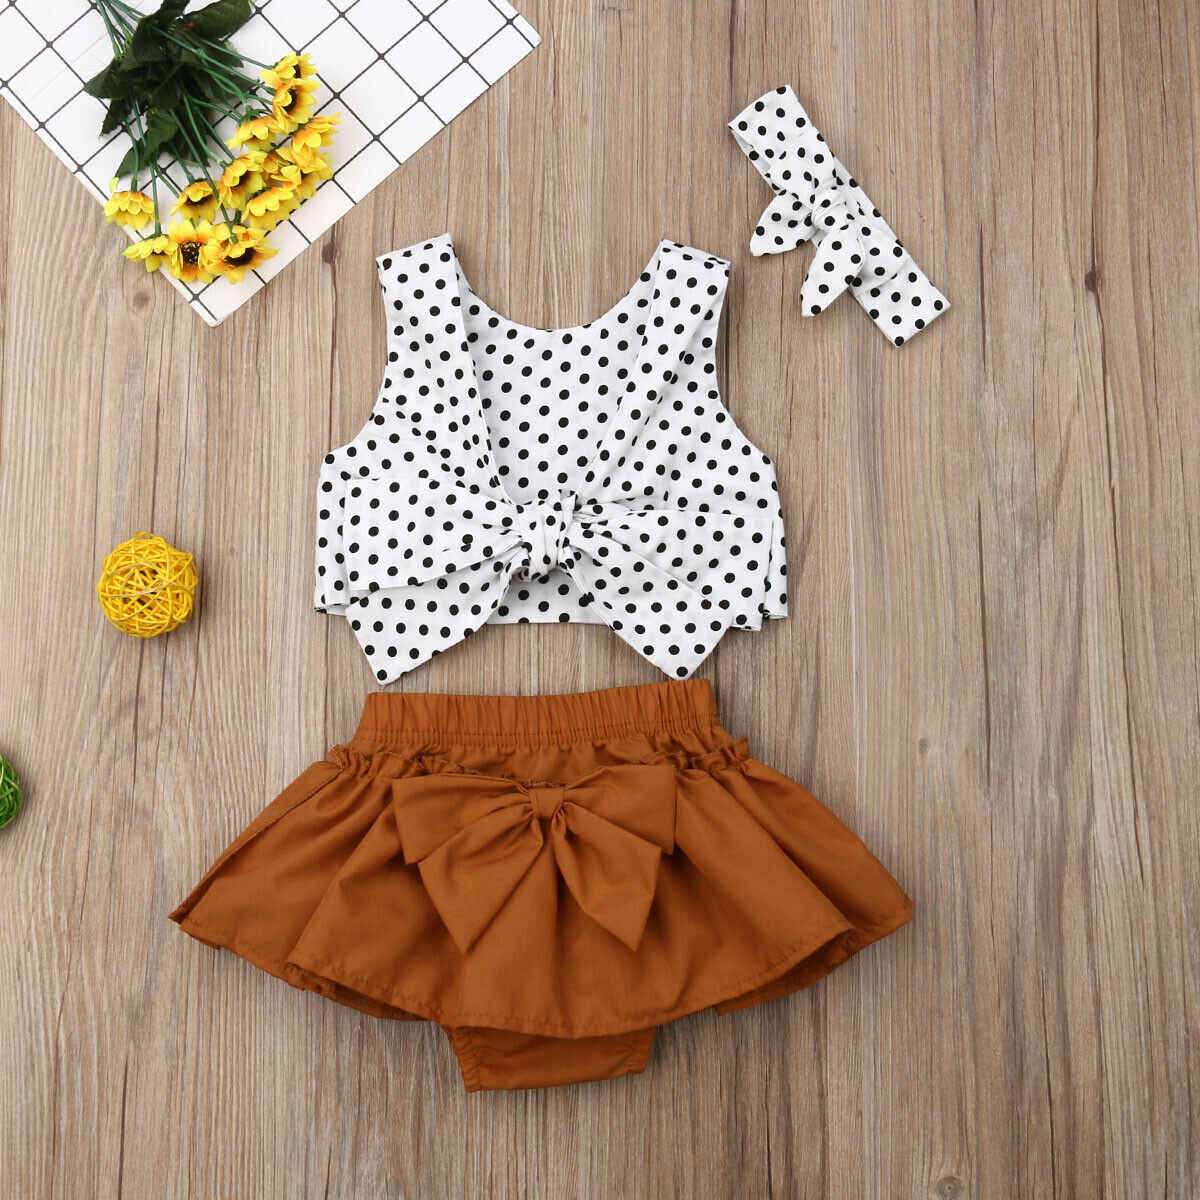 Baby Mädchen Polka Dot Tops + Bogen Knoten Rock + Stirnband 3 PCS Set